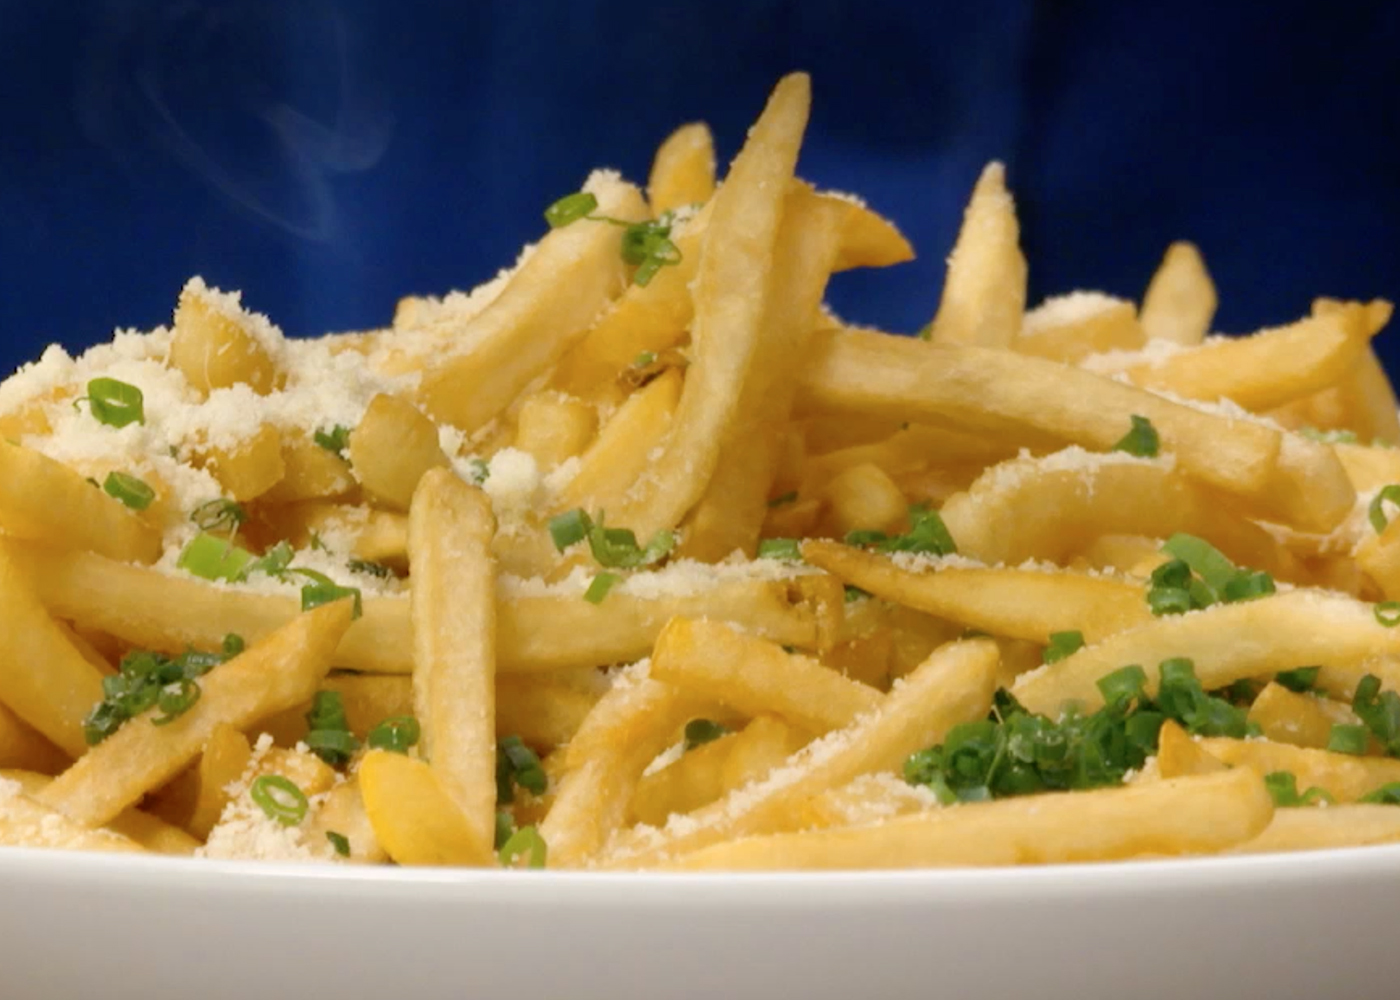 Flavorful French Fries